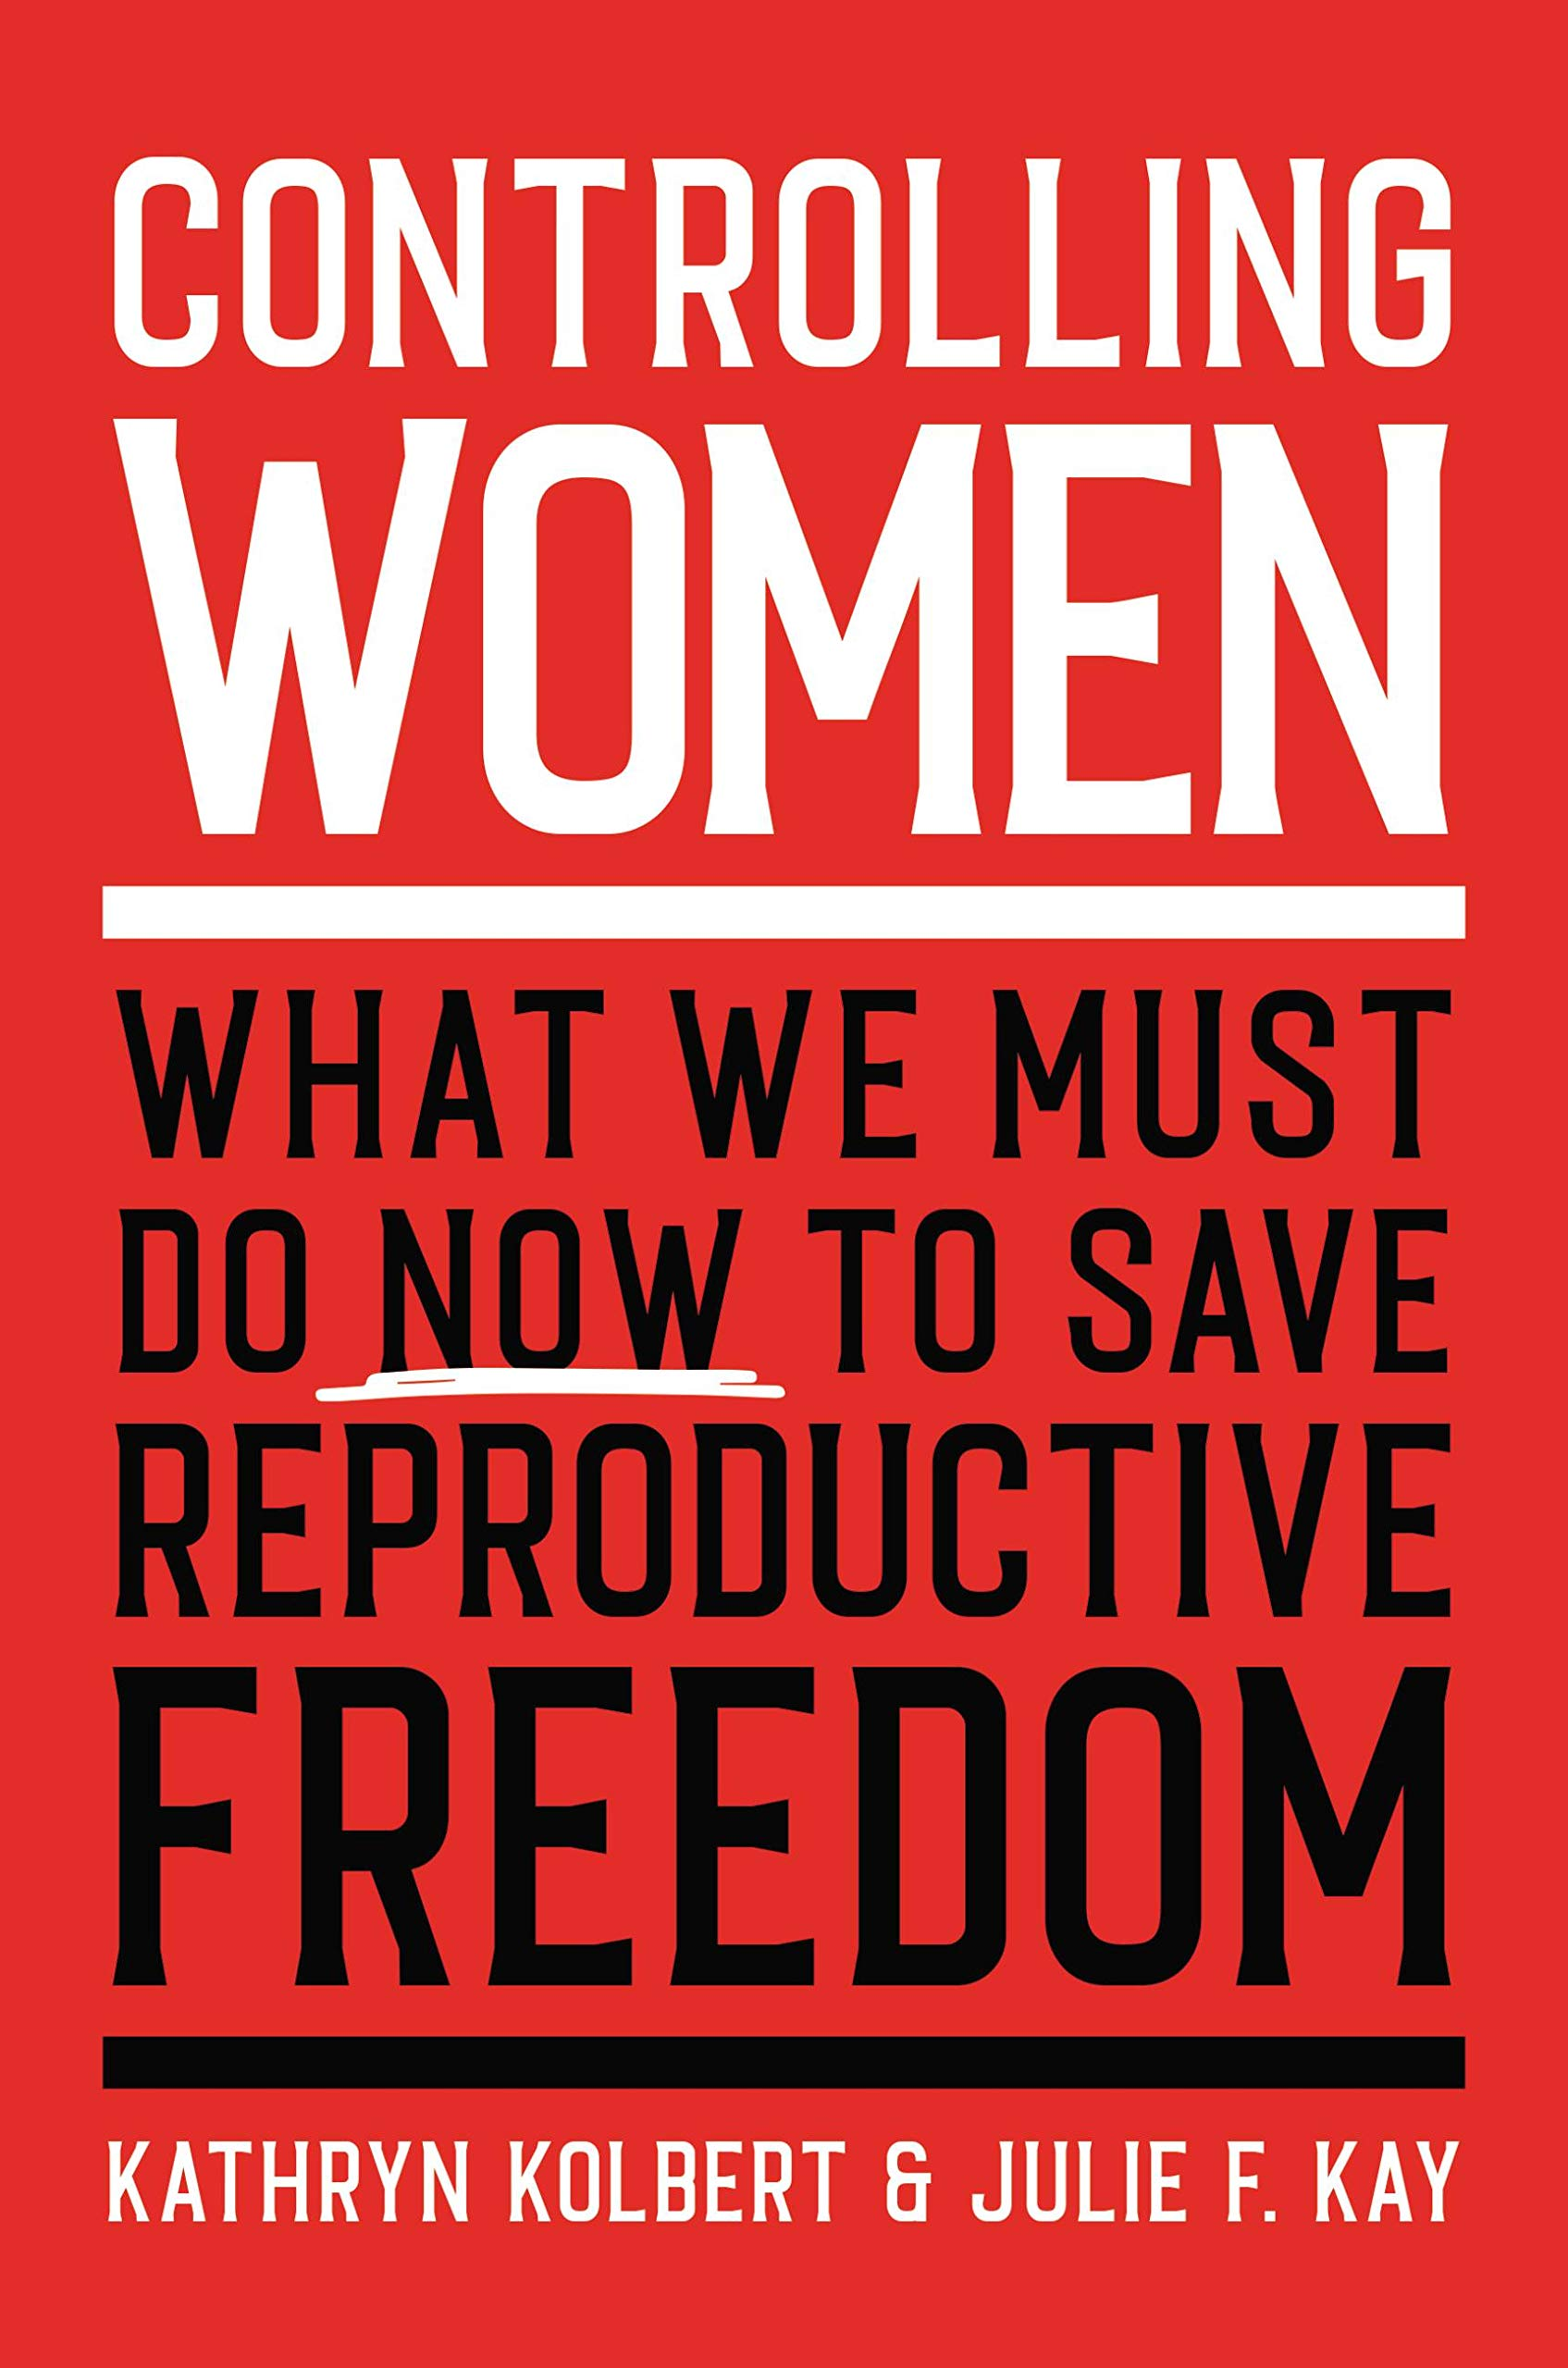 Kathryn Kolbert and Julie F. Kay, Controlling Women: What We Must Do Now to Save Reproductive Freedom